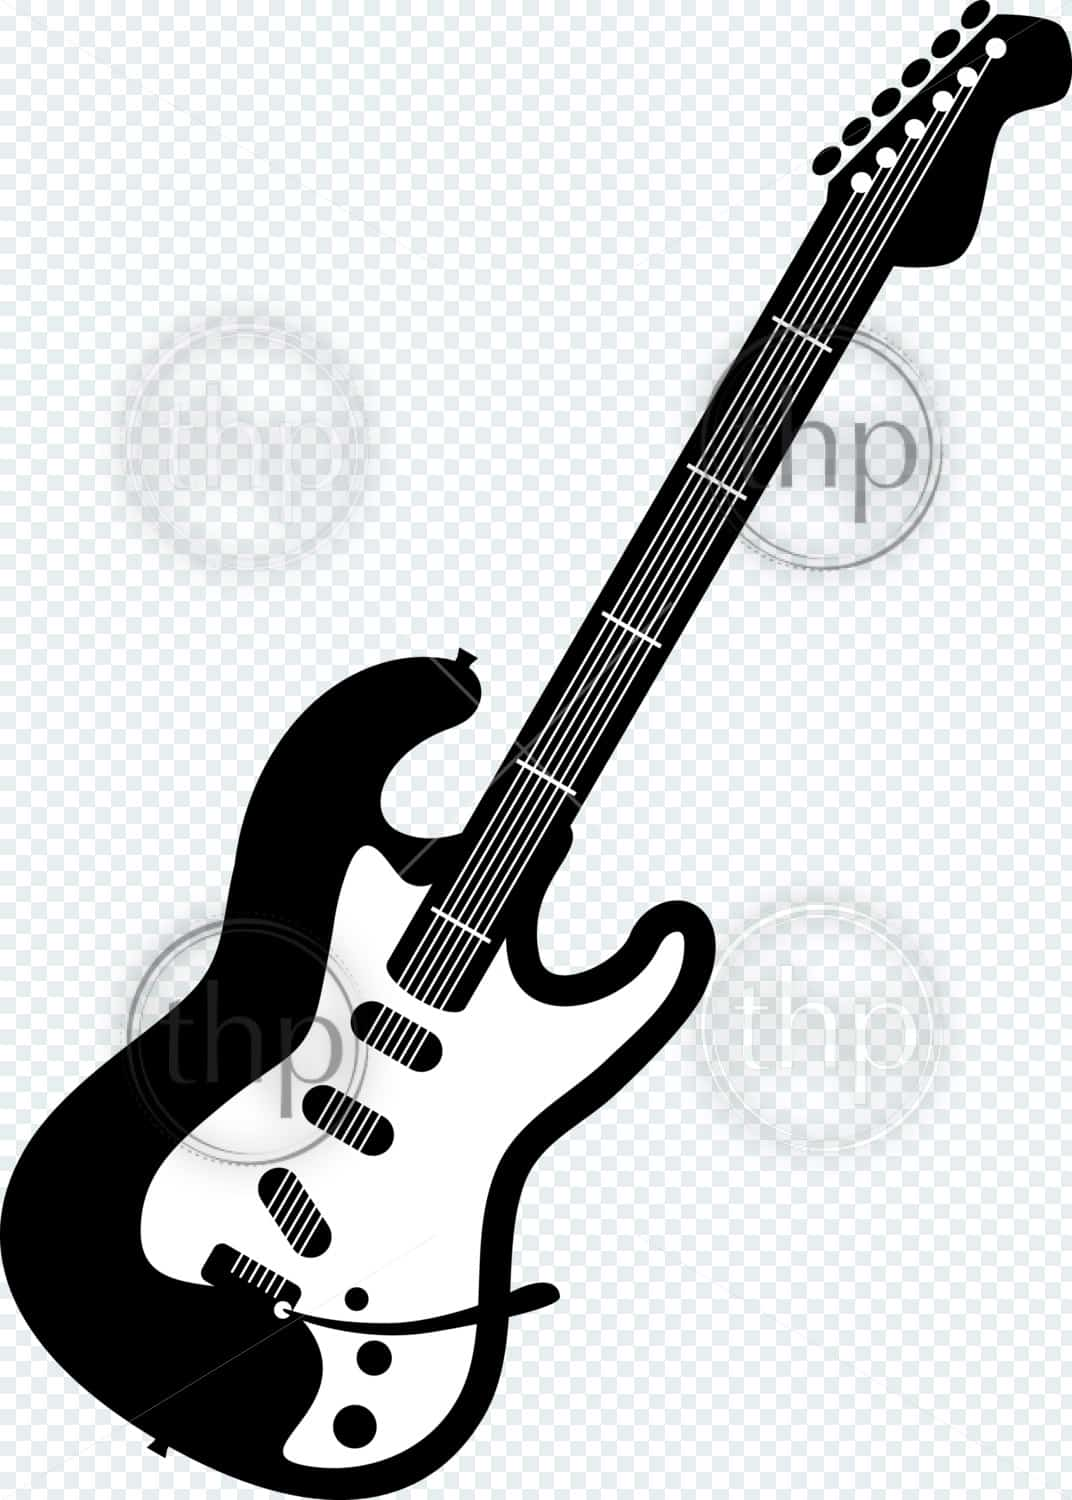 Electric guitar vector illustration in black and white